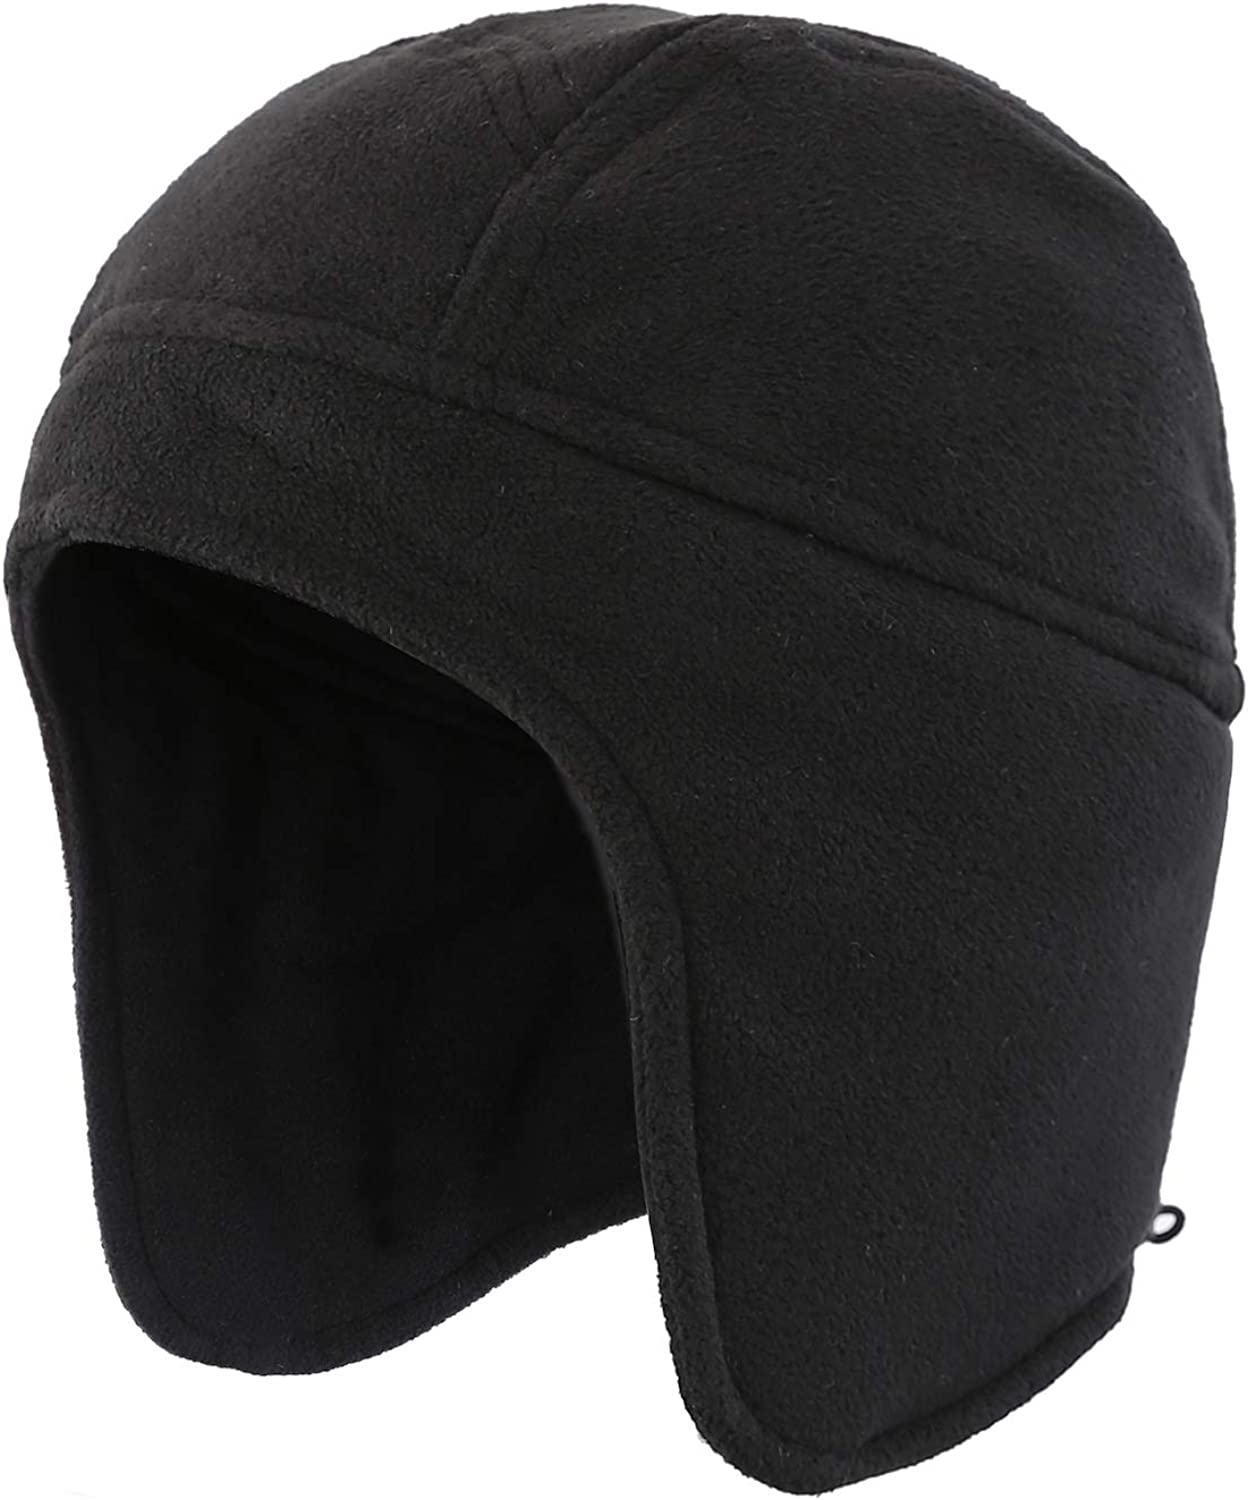 Home Prefer Mens Womens Warm Fleece Beanie Earflap Winter Hat Outdoor Skull Caps